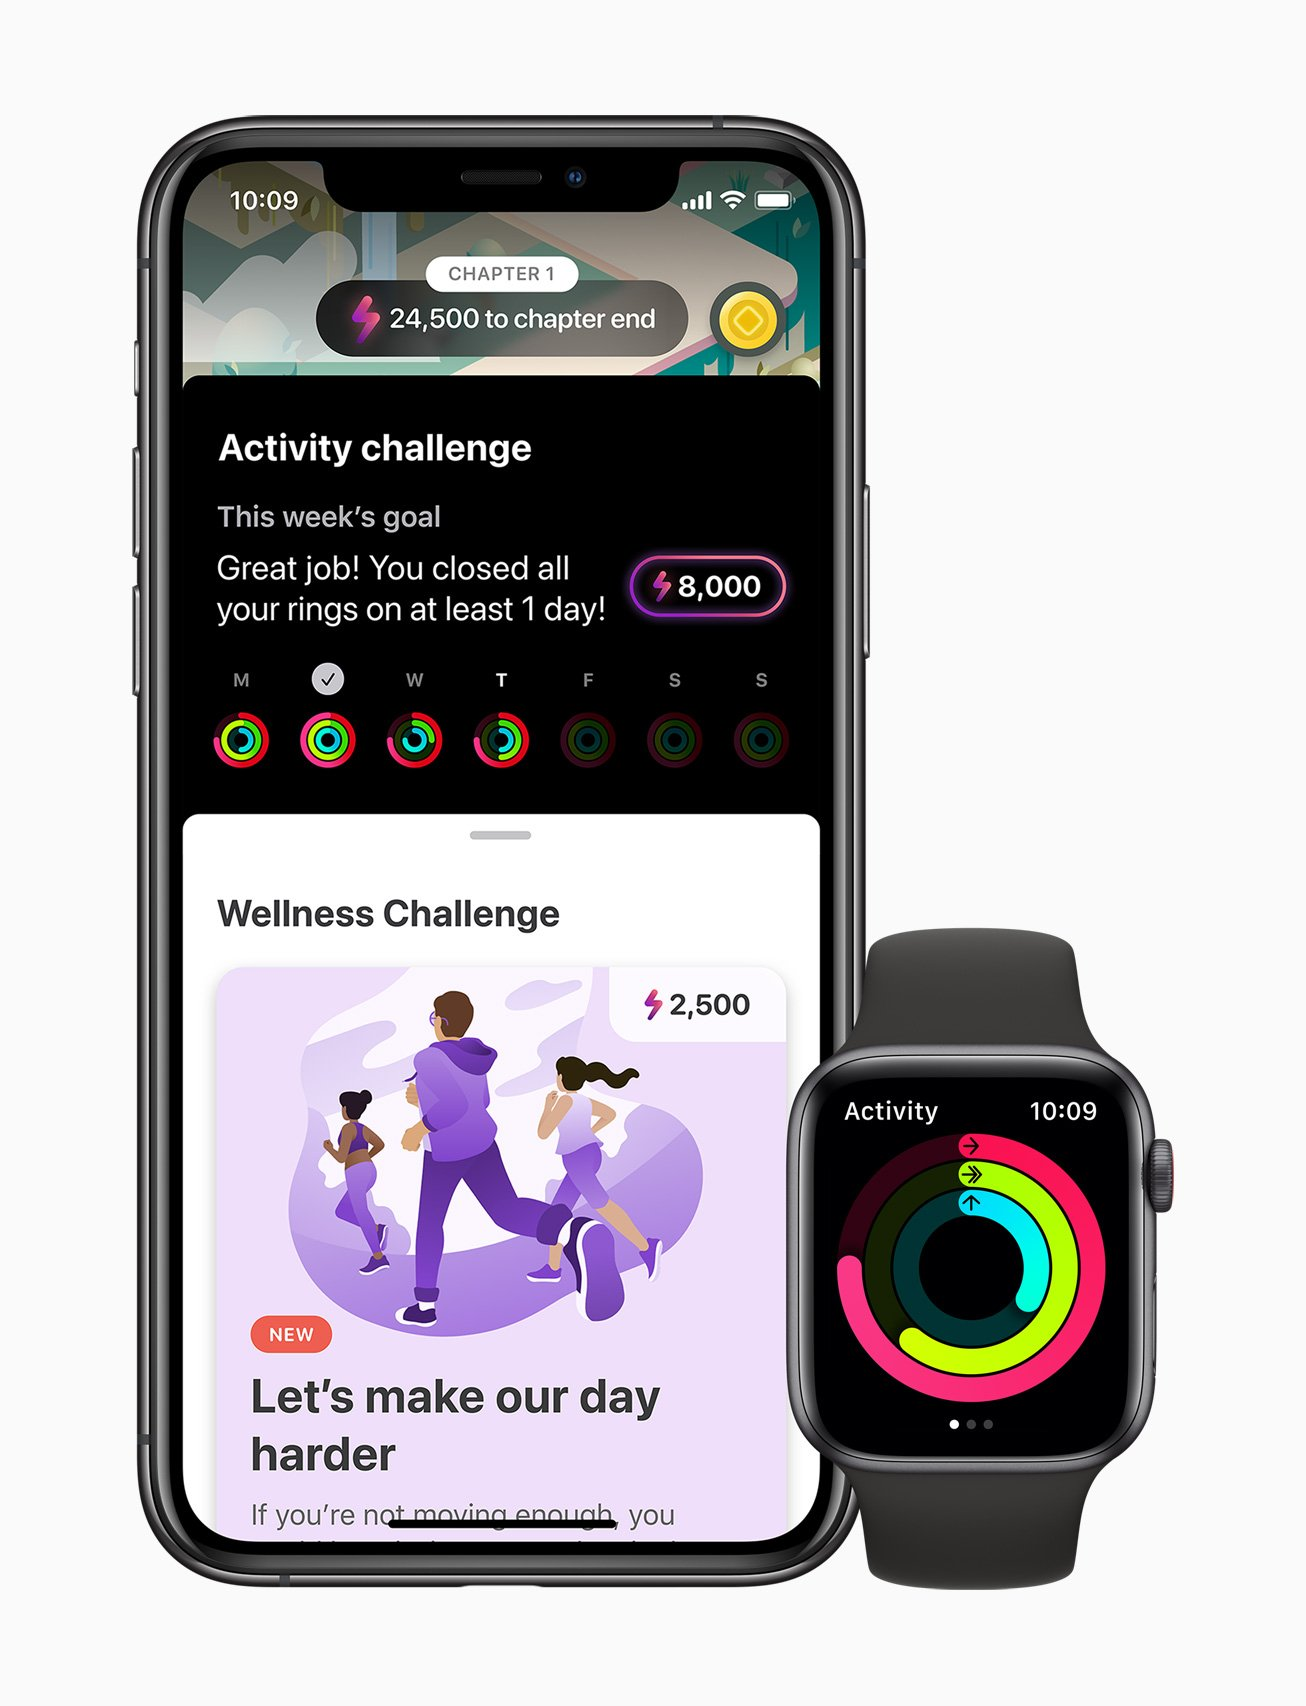 Singapore and Apple Launch LumiHealth App To Boost Wellness